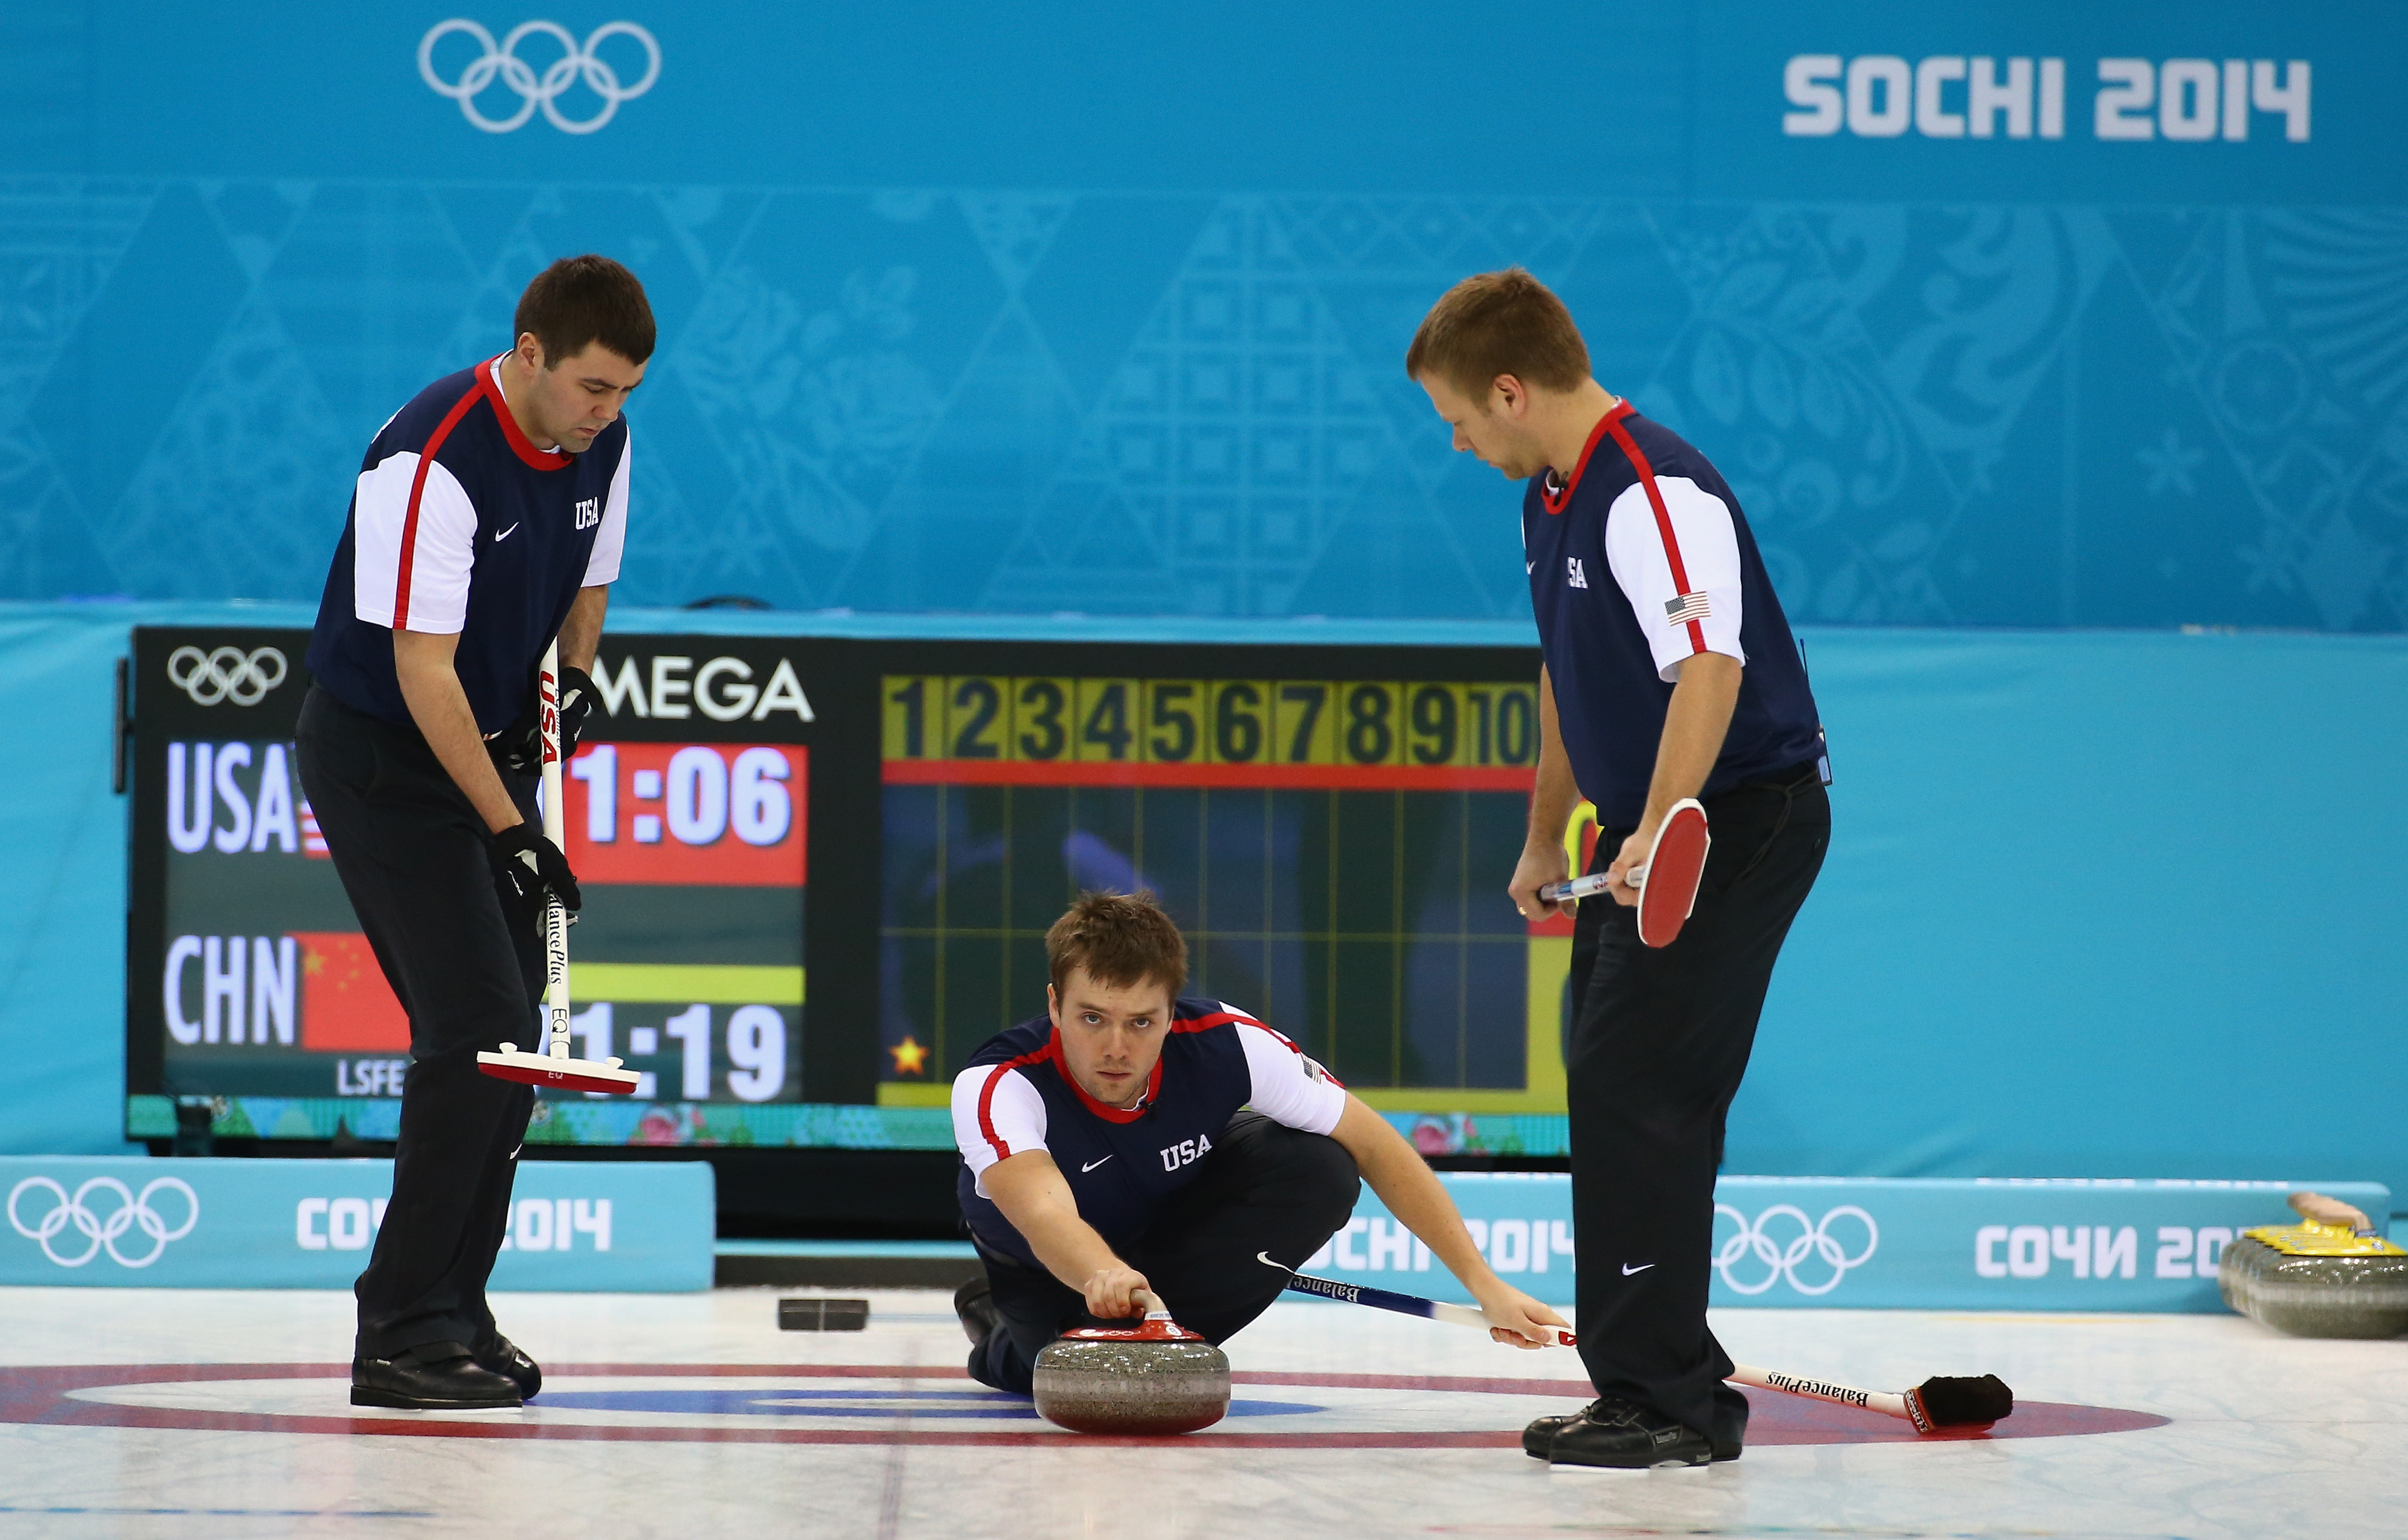 Olympic curling 2014 results: Americans go 0-3 overall in Tuesday action